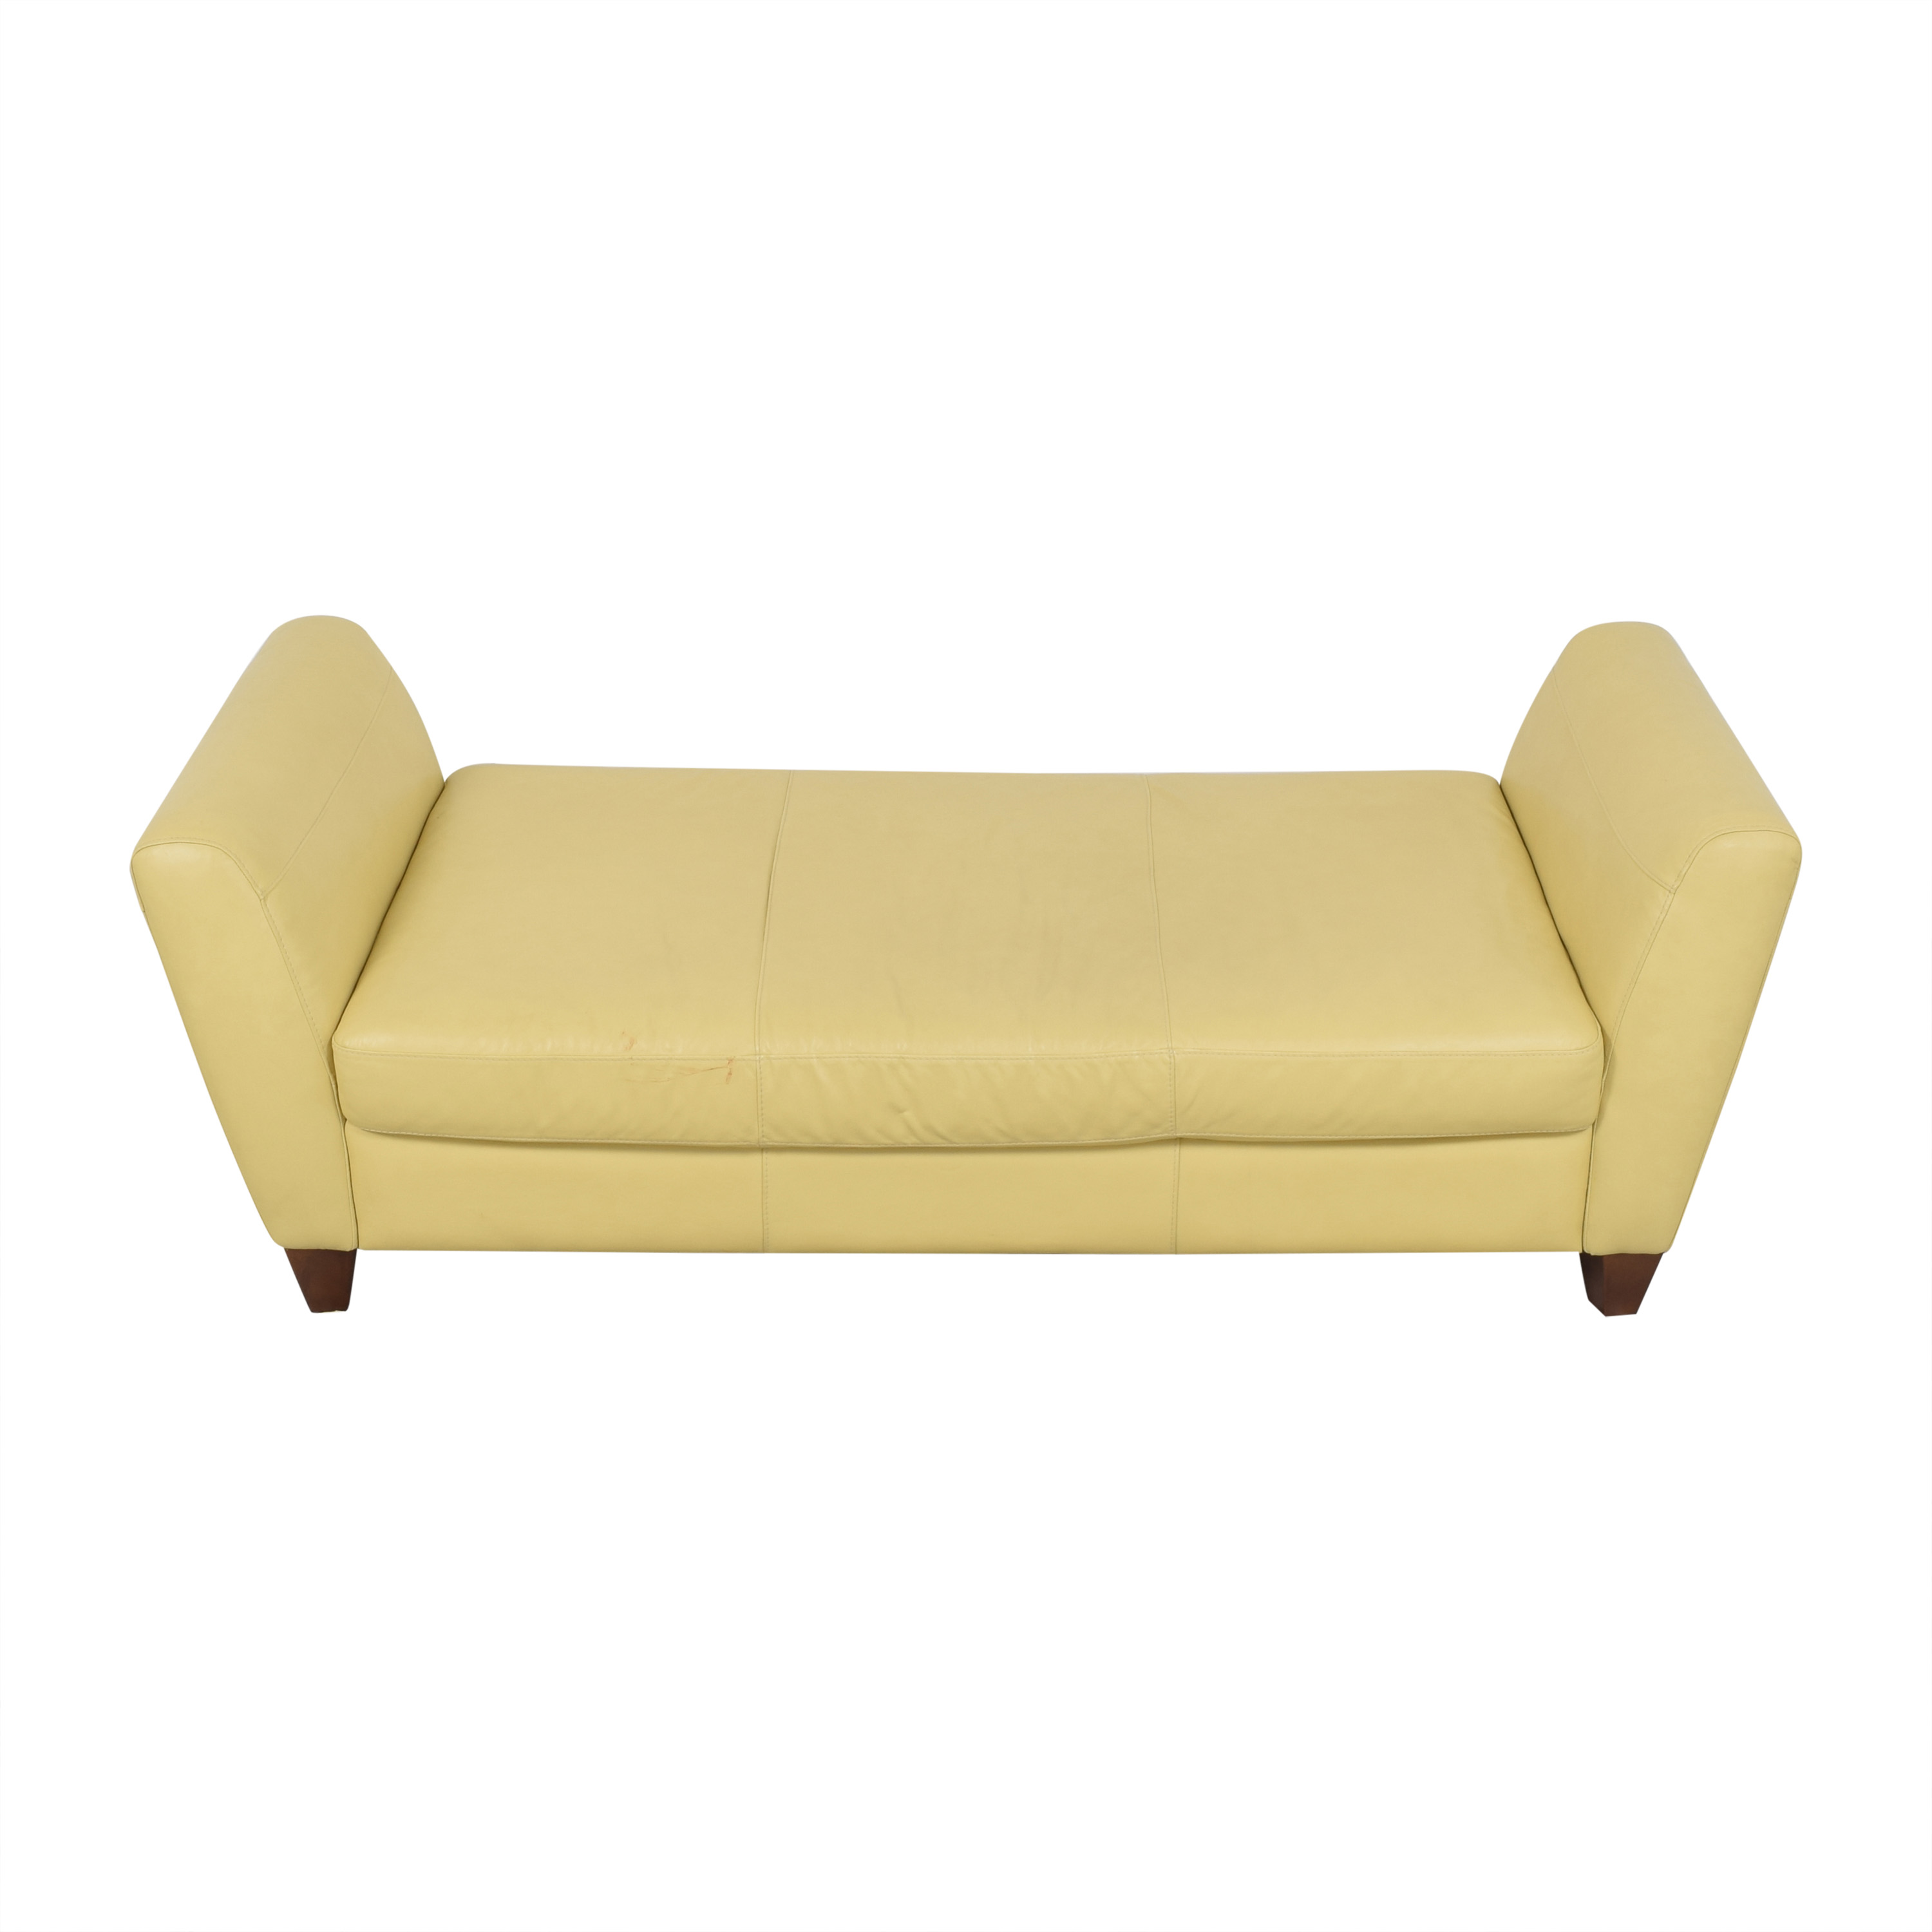 Italsofa Italsofa Daybed with Pillows discount